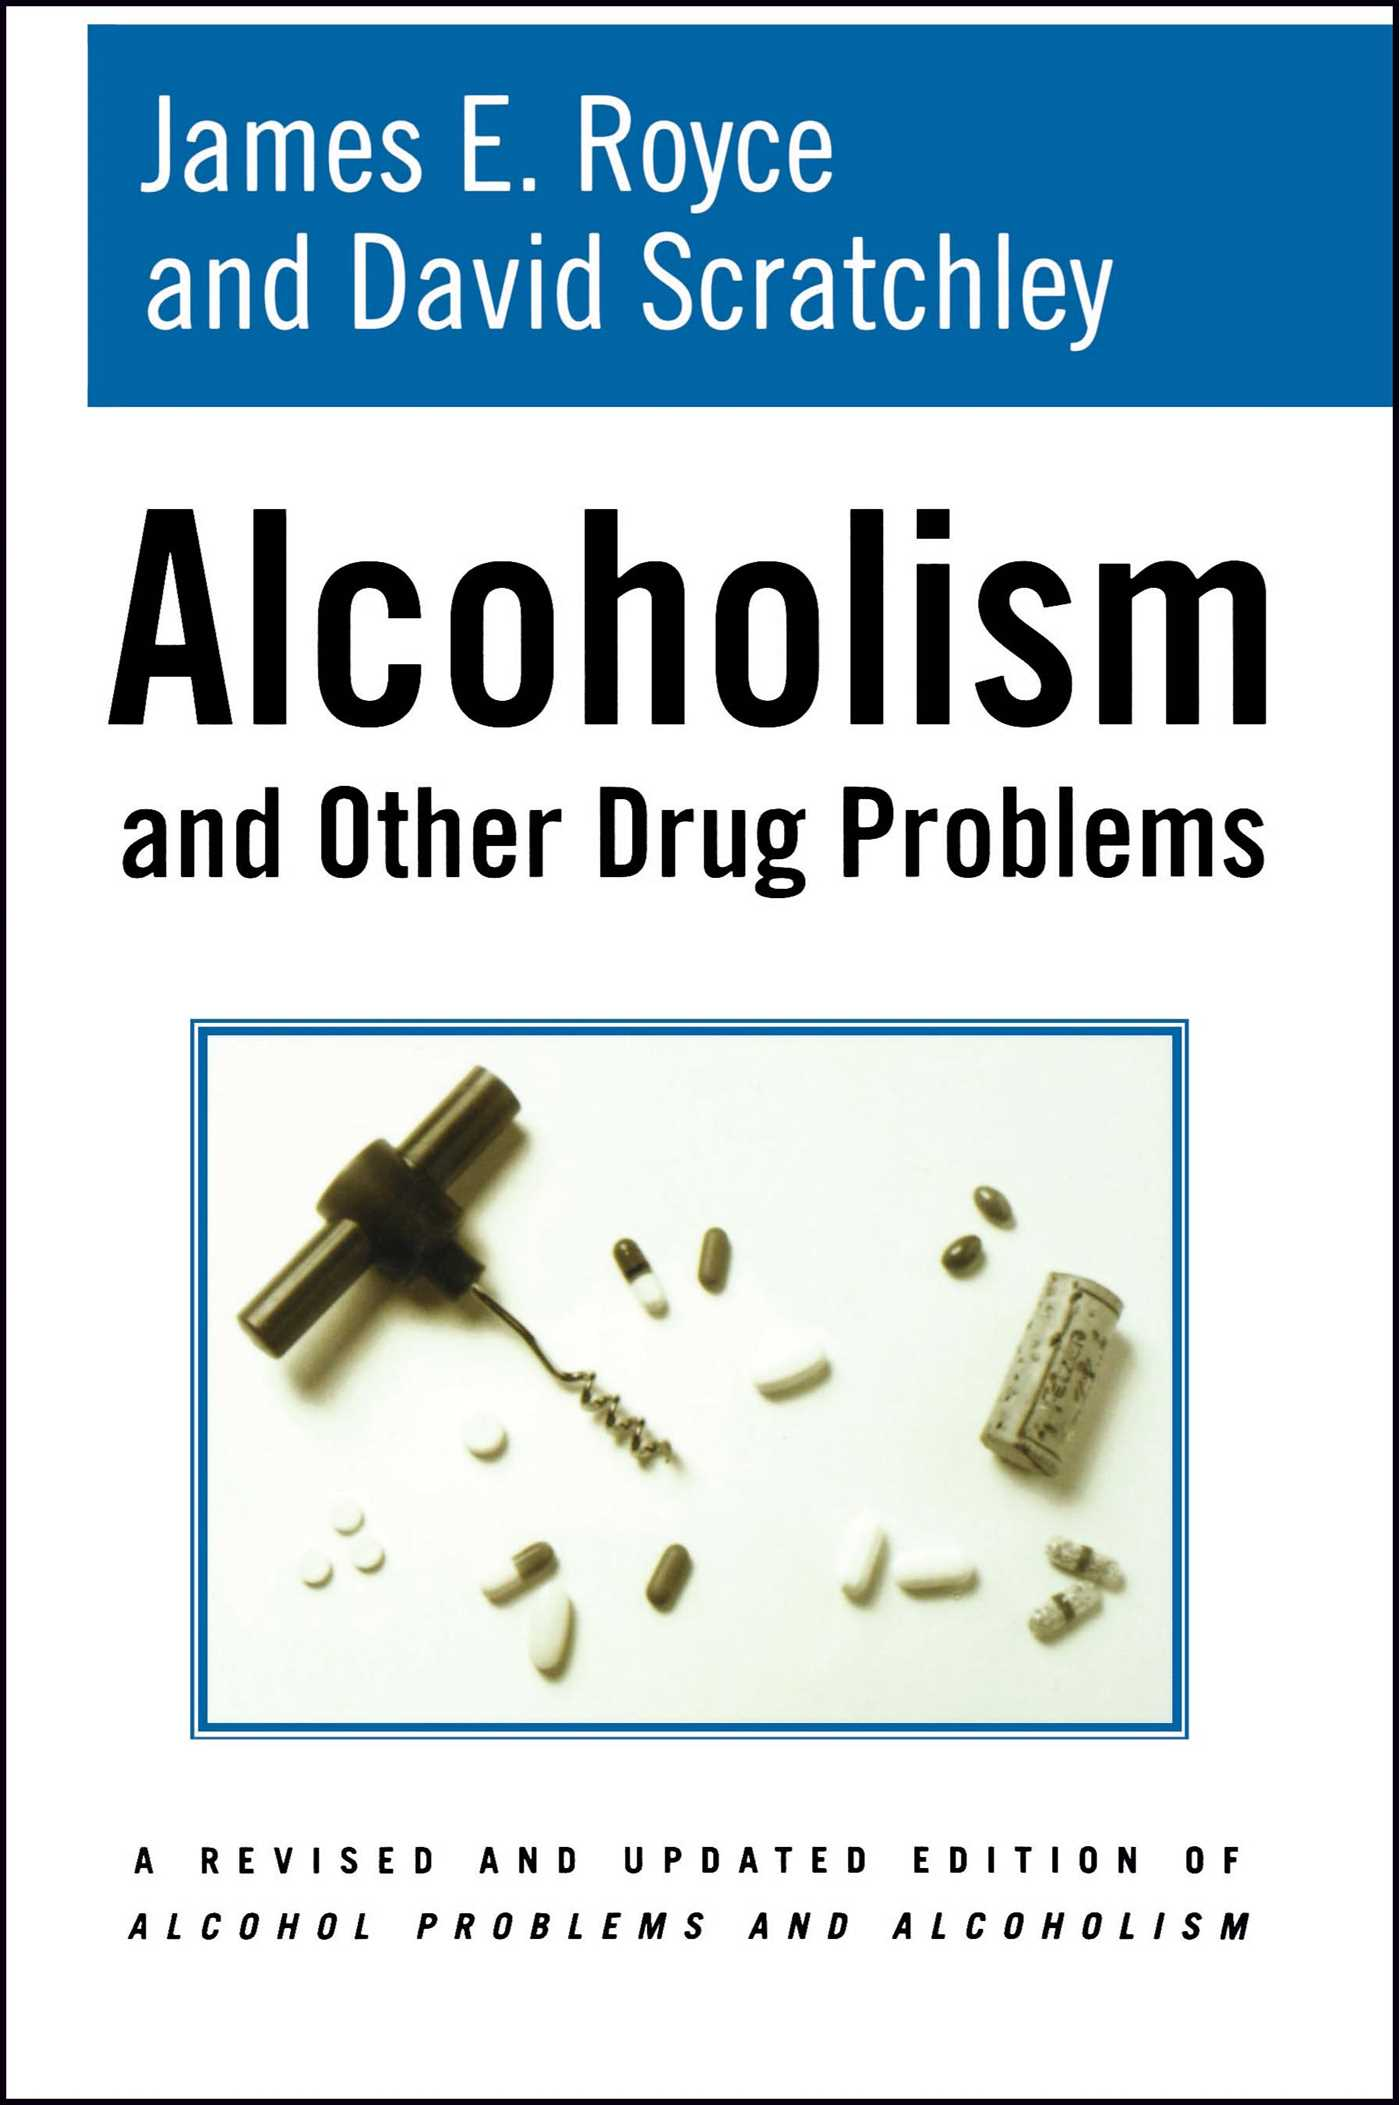 Alcoholism and other drug problems 9781416567738 hr